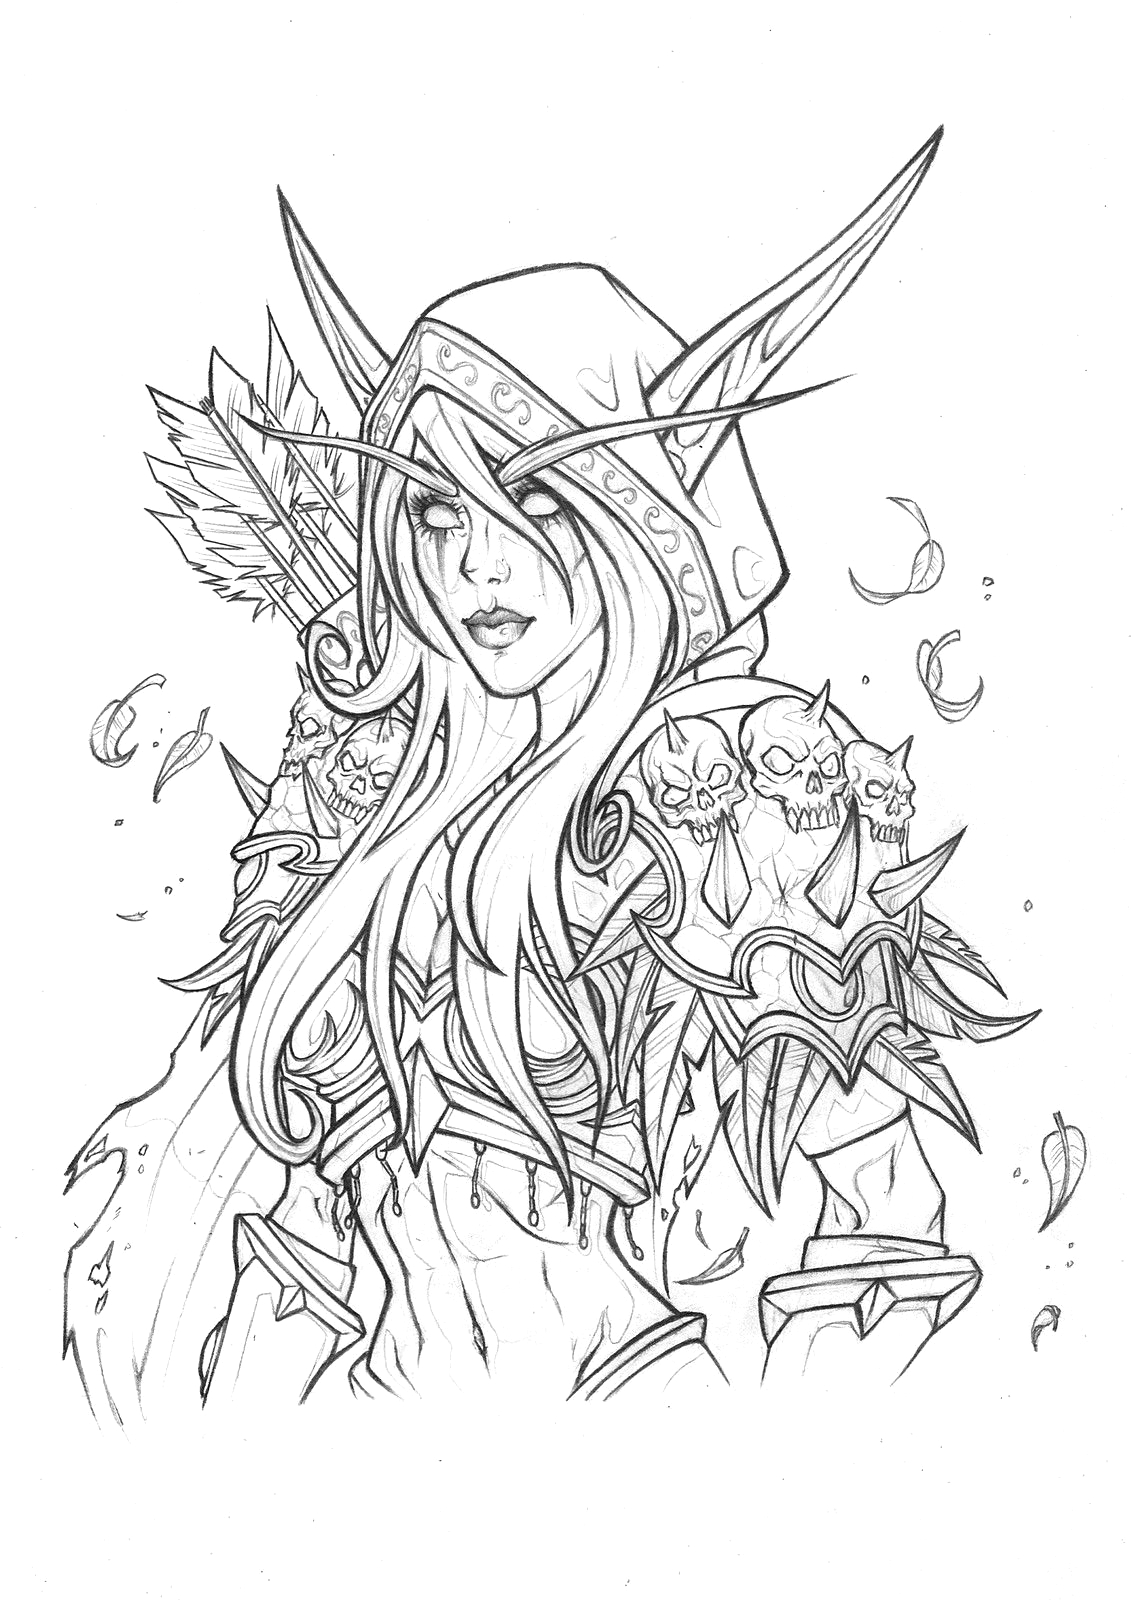 World Of Warcraft Coloring Pages to Print Sylvanas Windrunner Drawing Rachael May On Artstation at